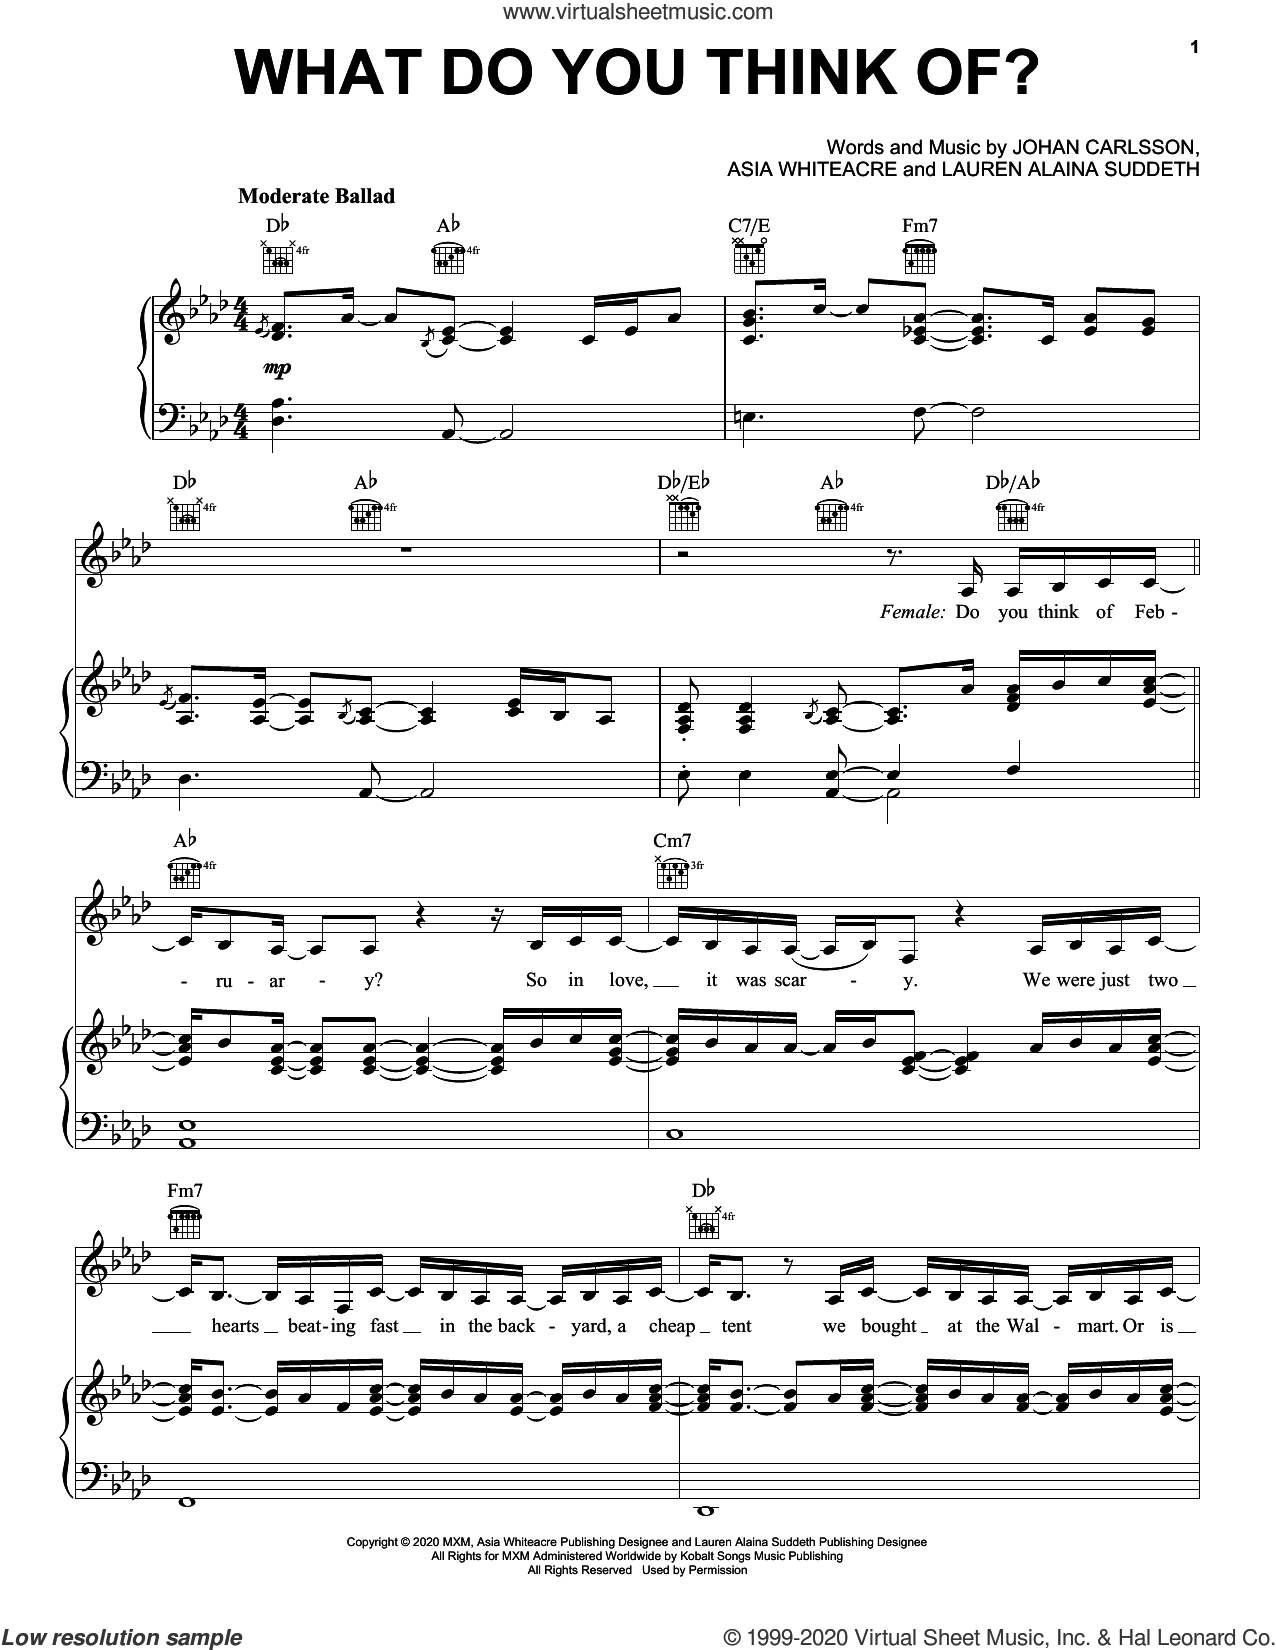 What Do You Think Of? sheet music for voice, piano or guitar by Lauren Alaina & Lukas Graham, Asia Whiteacre, Johan Carlsson and Lauren Alaina Suddeth, intermediate skill level